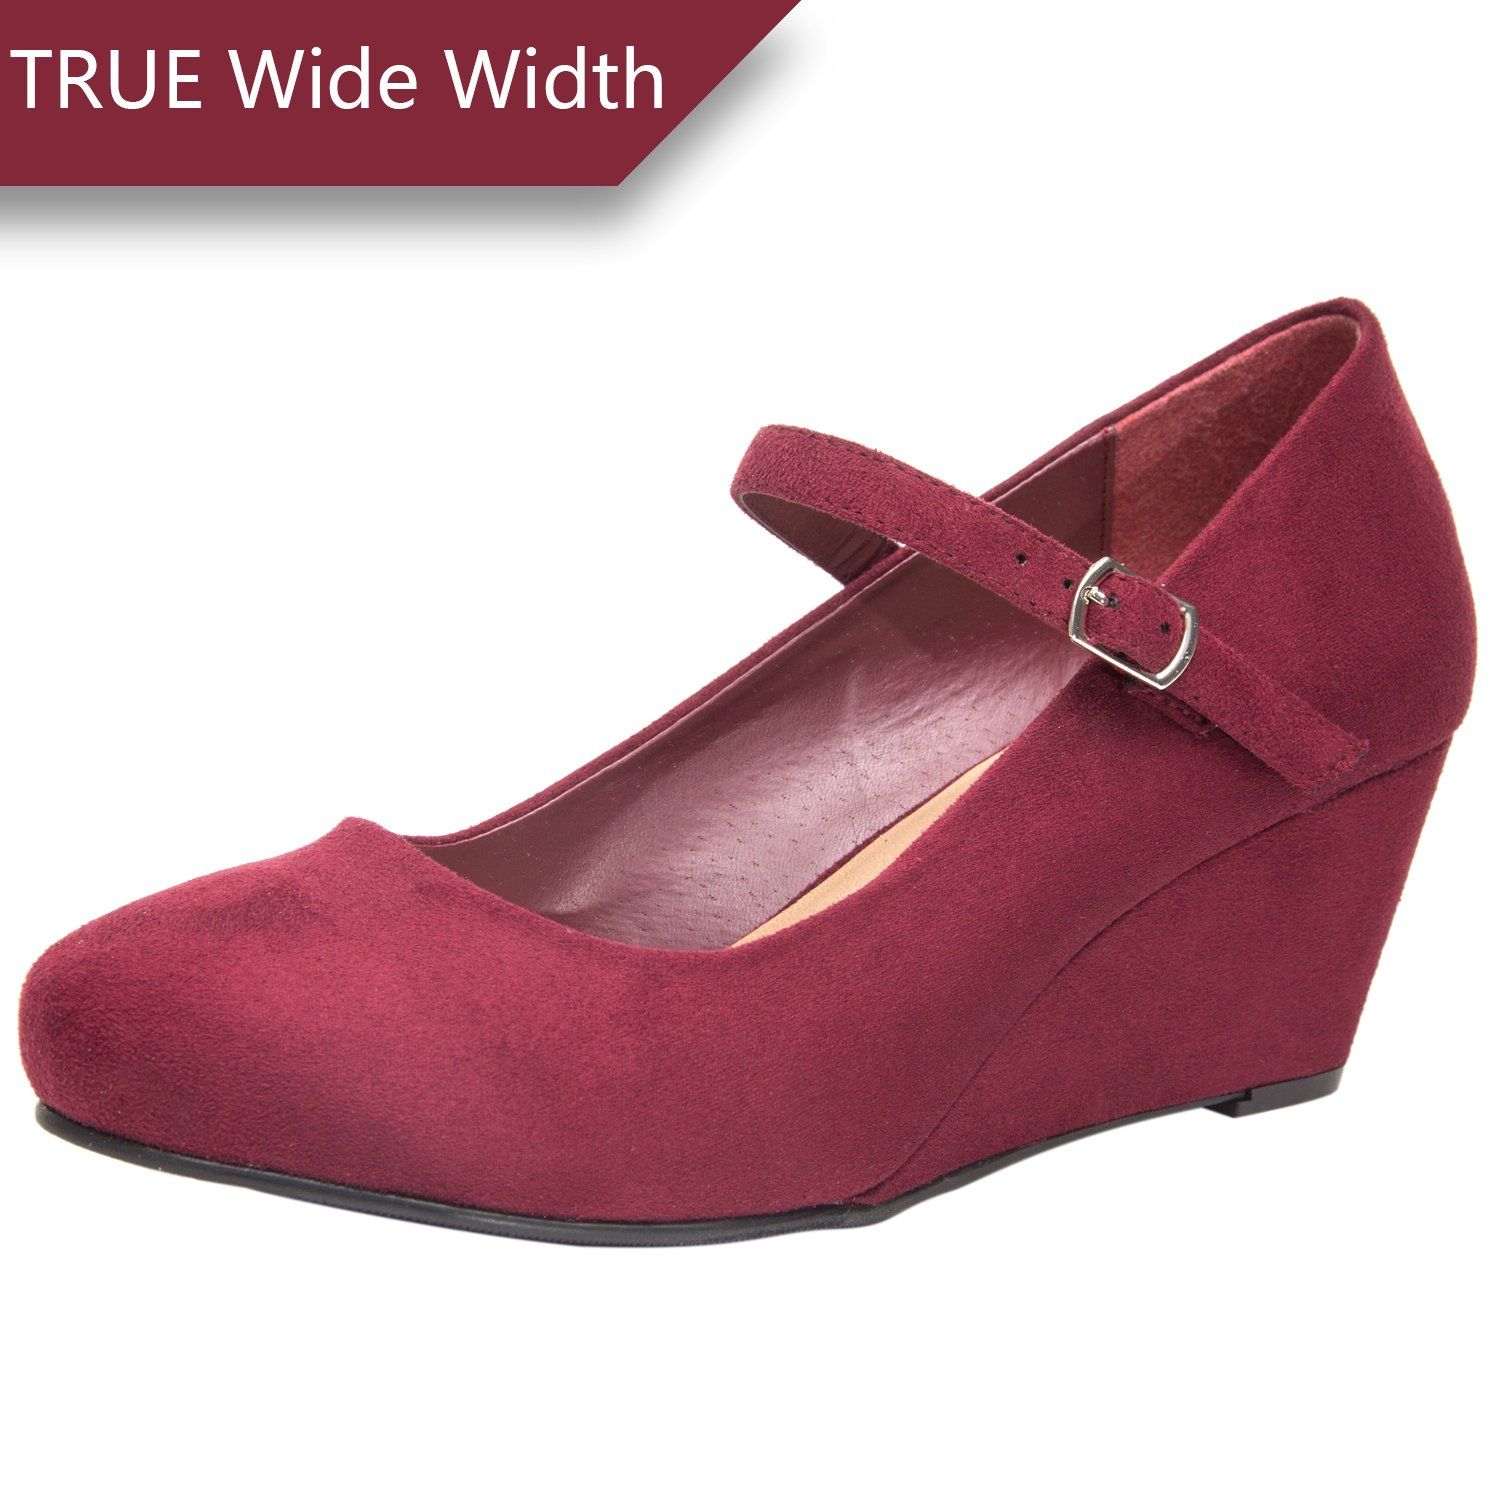 65dda2487075 Get Quotations · Luoika Women s Wide Width Wedge Shoes - Mary Jane Shoes w Ankle  Buckle Strap